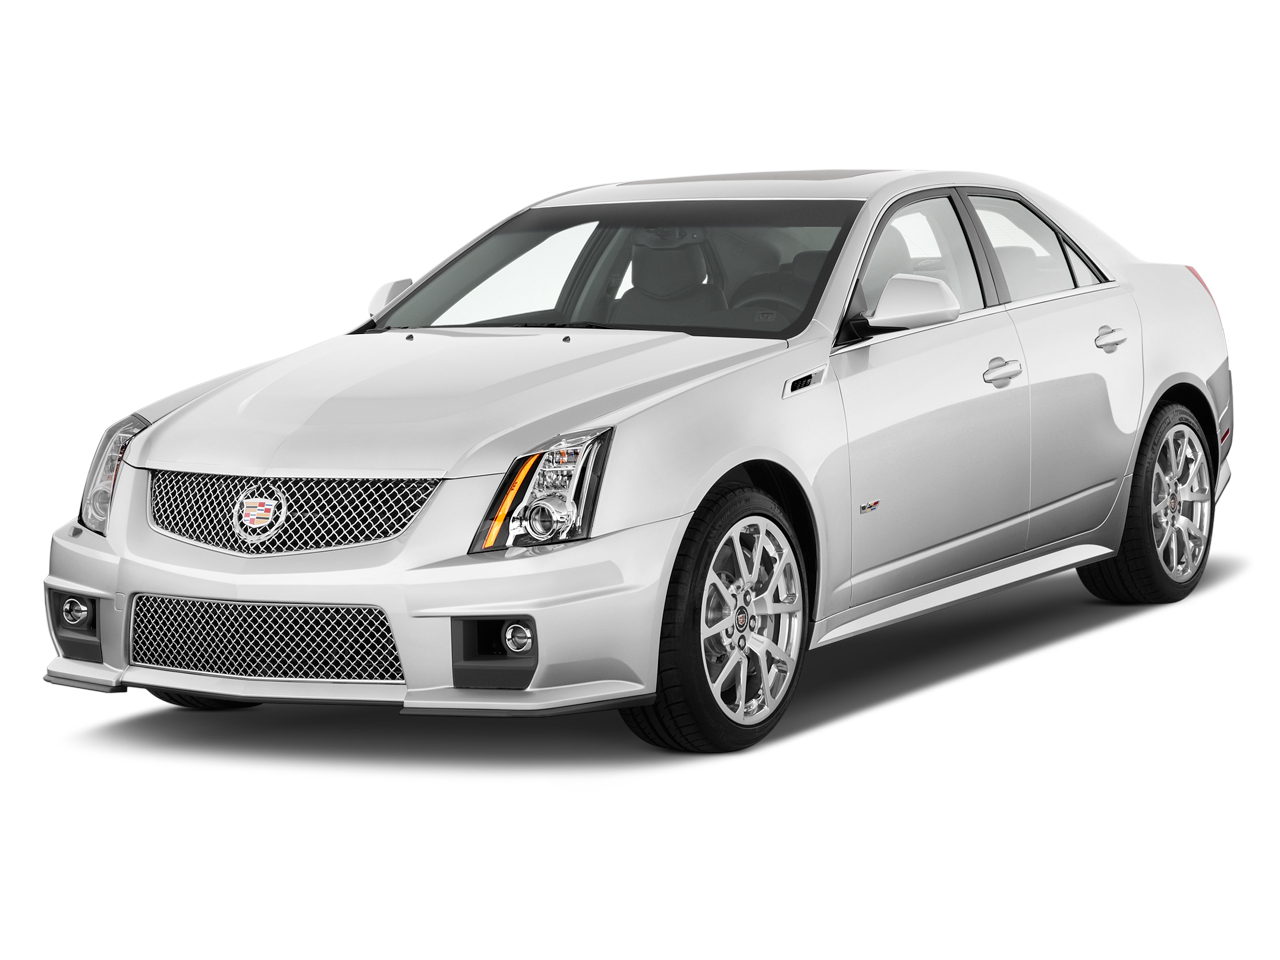 2011 cadillac cts review ratings specs prices and photos the car connection. Black Bedroom Furniture Sets. Home Design Ideas